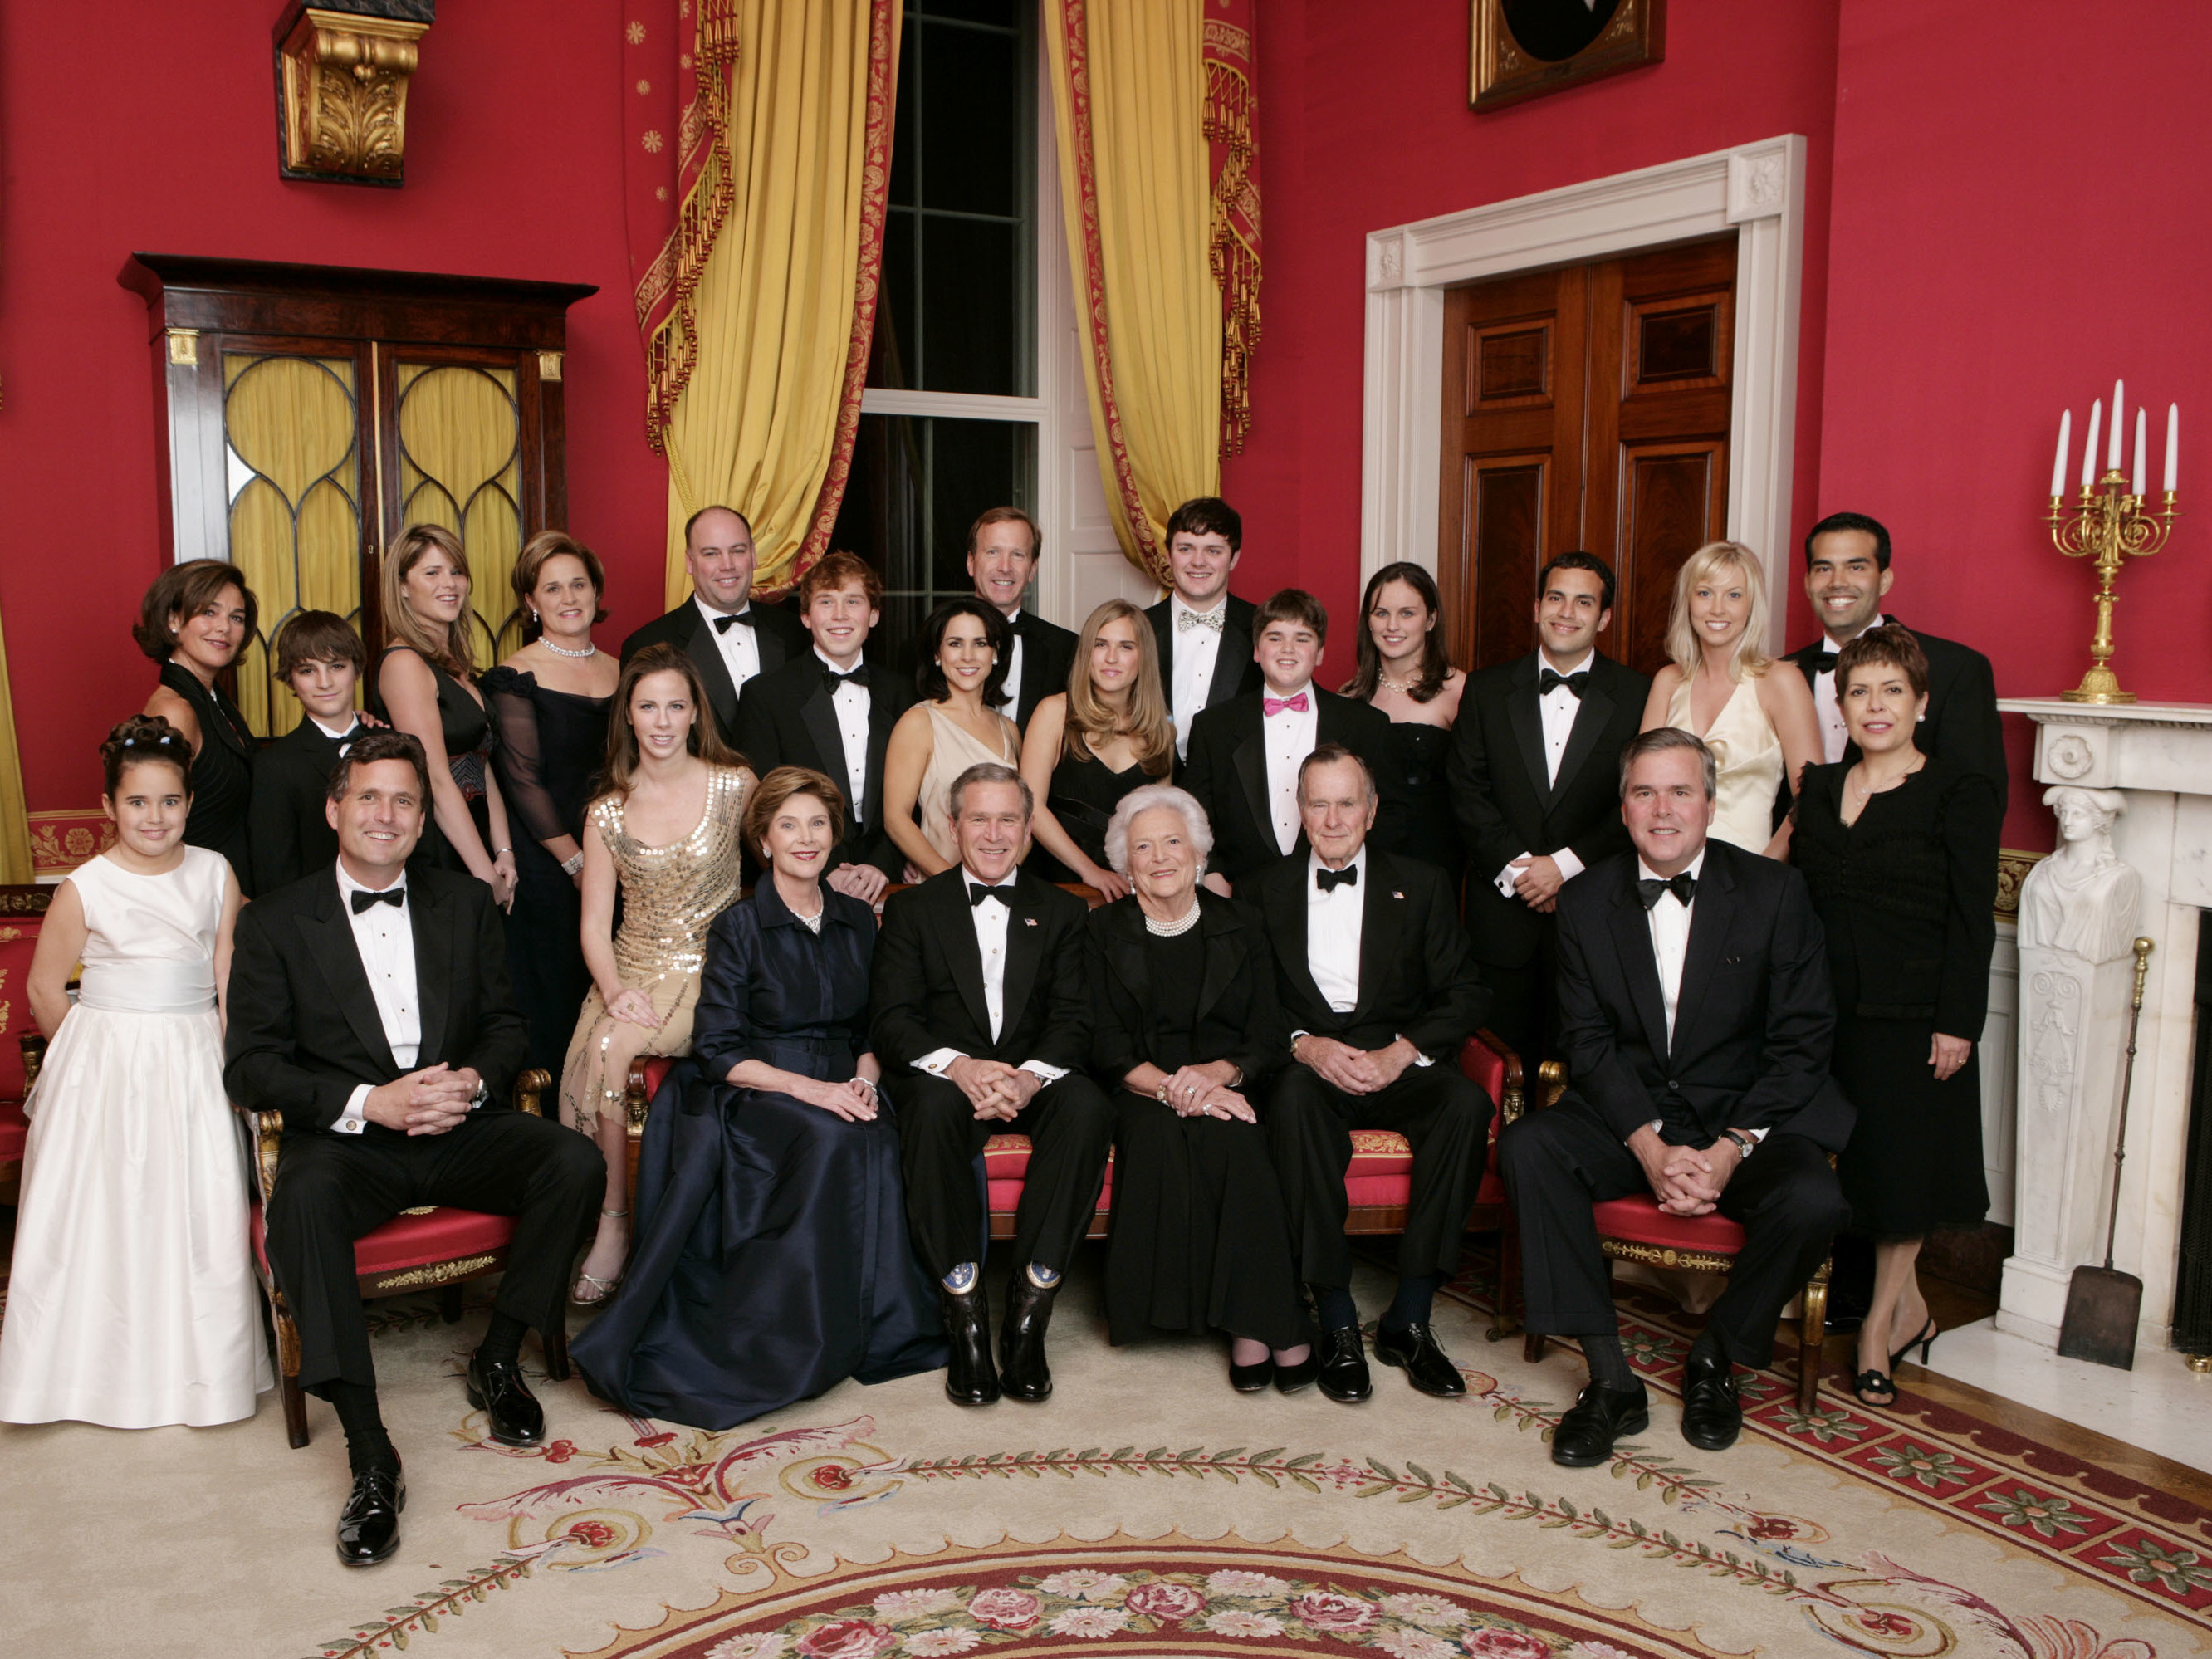 Then-President George W. Bush, then-first lady Laura Bush, former first lady Barbara Bush and former President George H.W. Bush sit surrounded by family in the Red Room of the White House on Jan. 6, 2005, in Washington, D.C. Friends and family joined former President Bush and Barbara Bush in celebrating their 60th wedding anniversary at a dinner. (The White House/Getty Images)